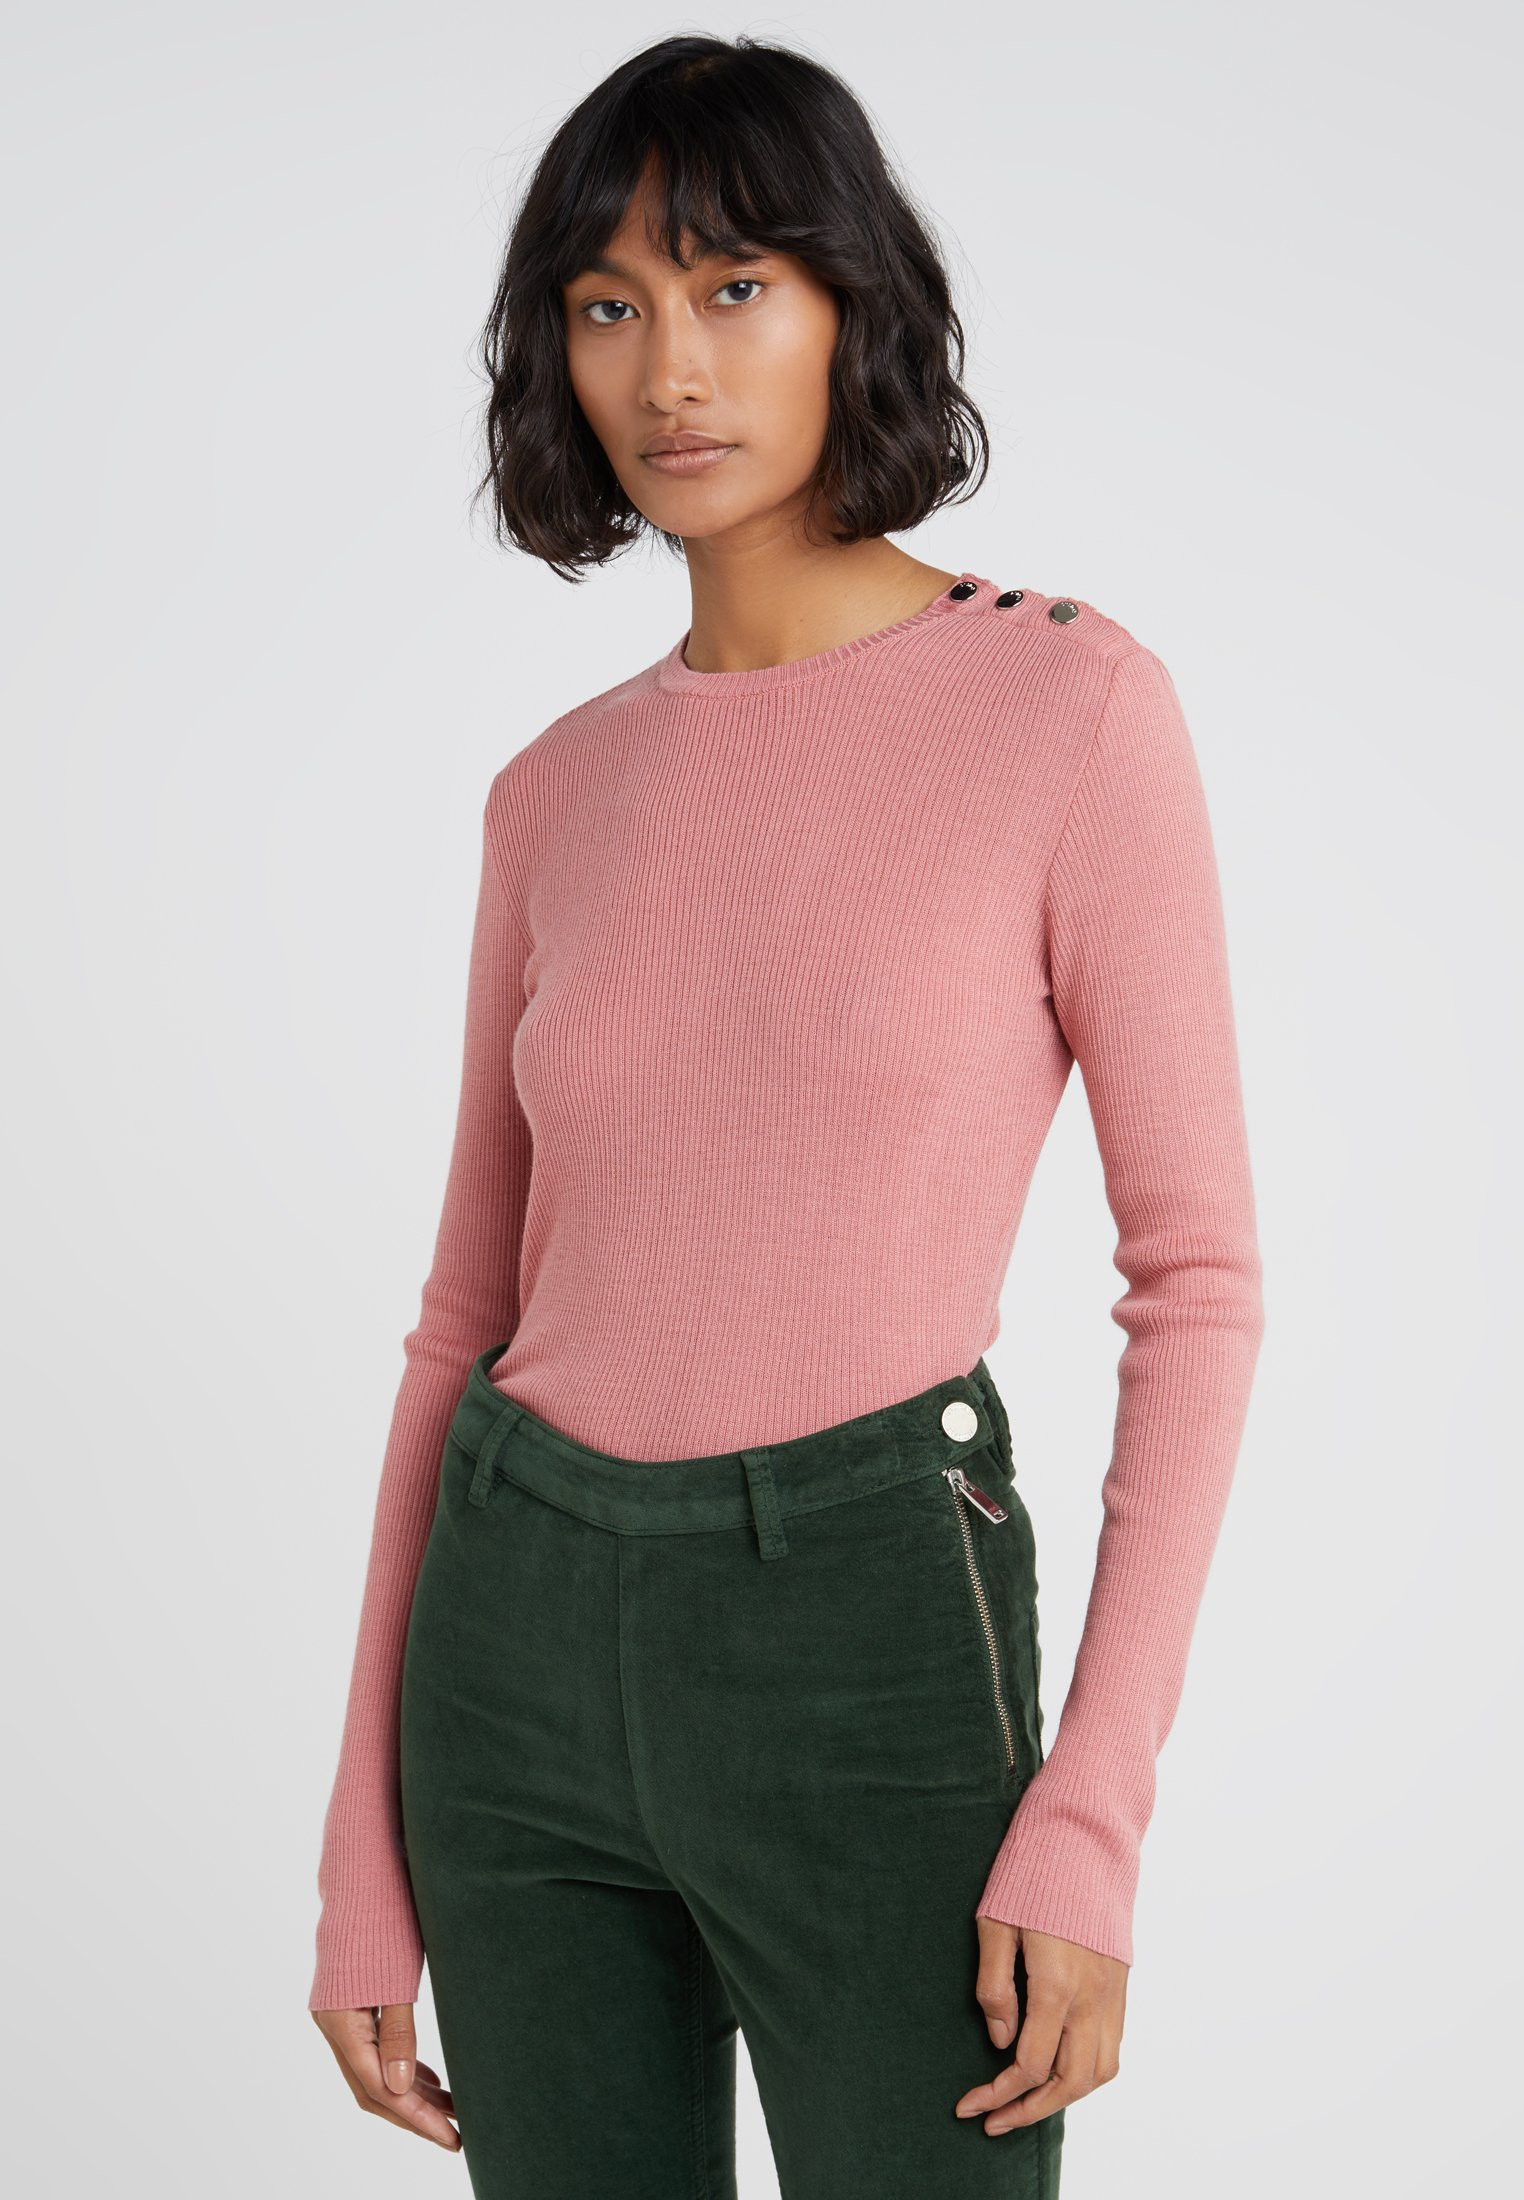 2nd Day JESSIE - Pullover dusty rose